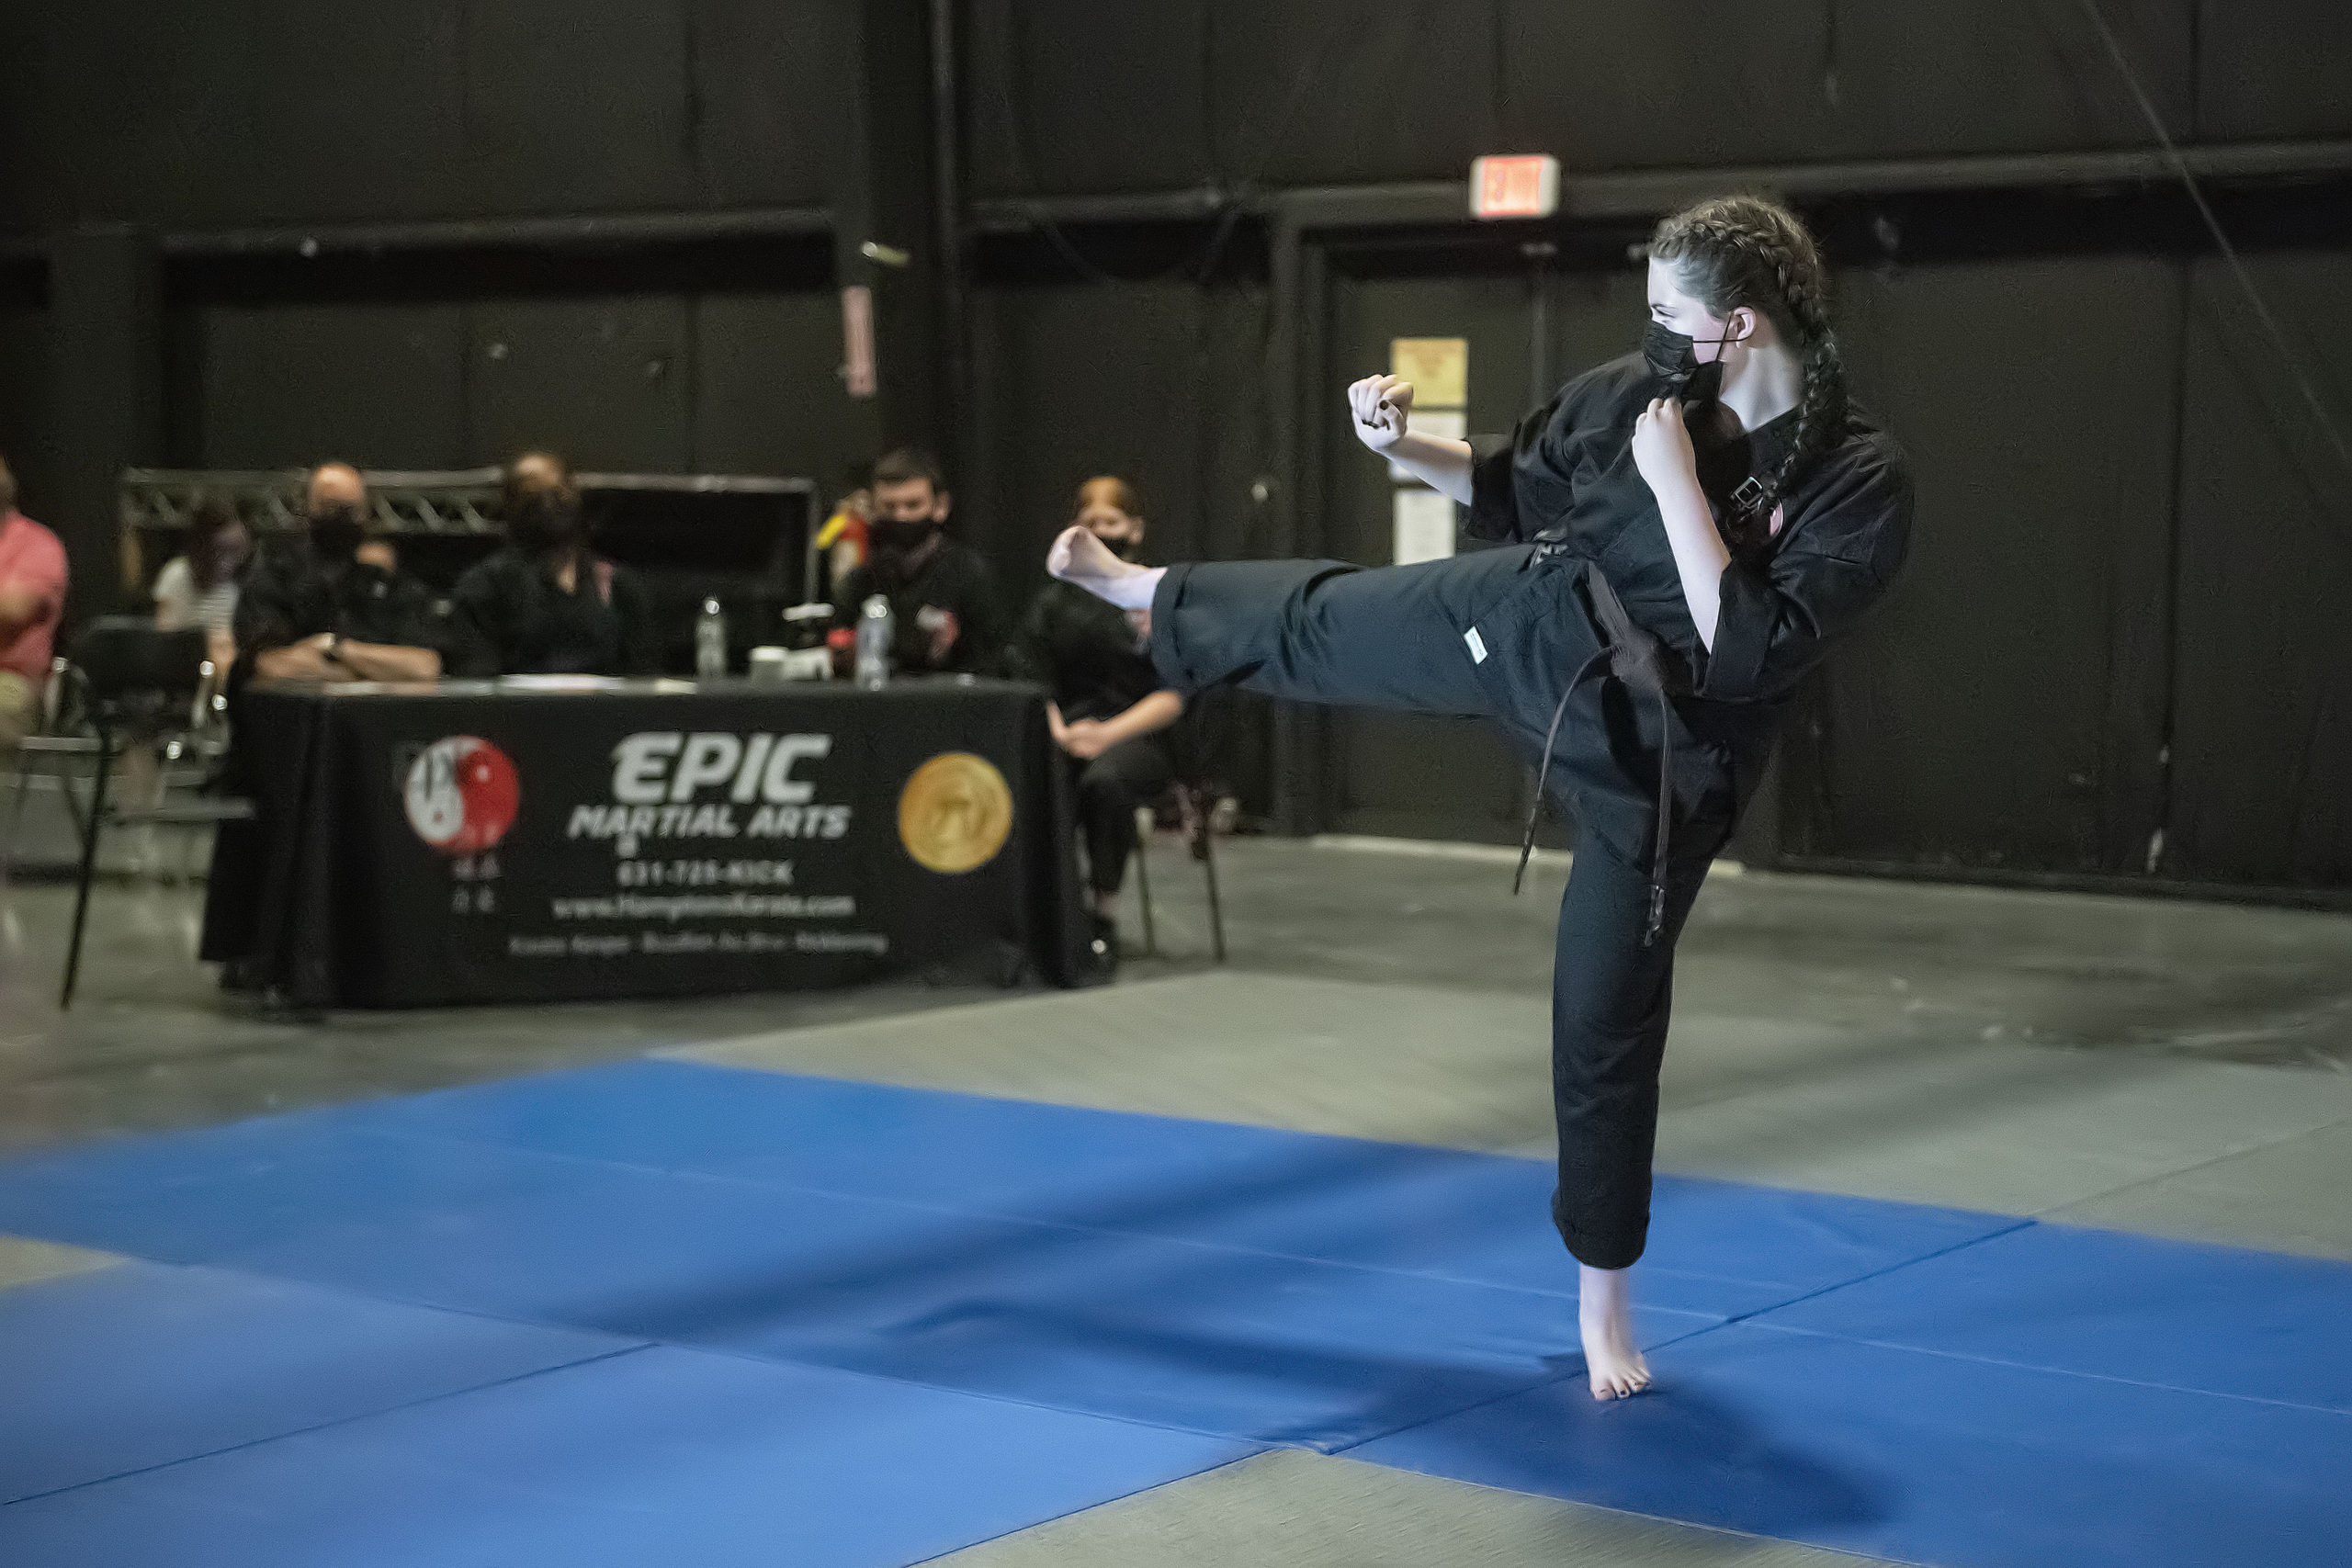 EPIC Martial Arts brown belt student Emily Glass performs a series of skills before a panel of six black belts in order to receive her own promotion to black belt during a ceremony at LTV studios in Wainscott on Sunday.